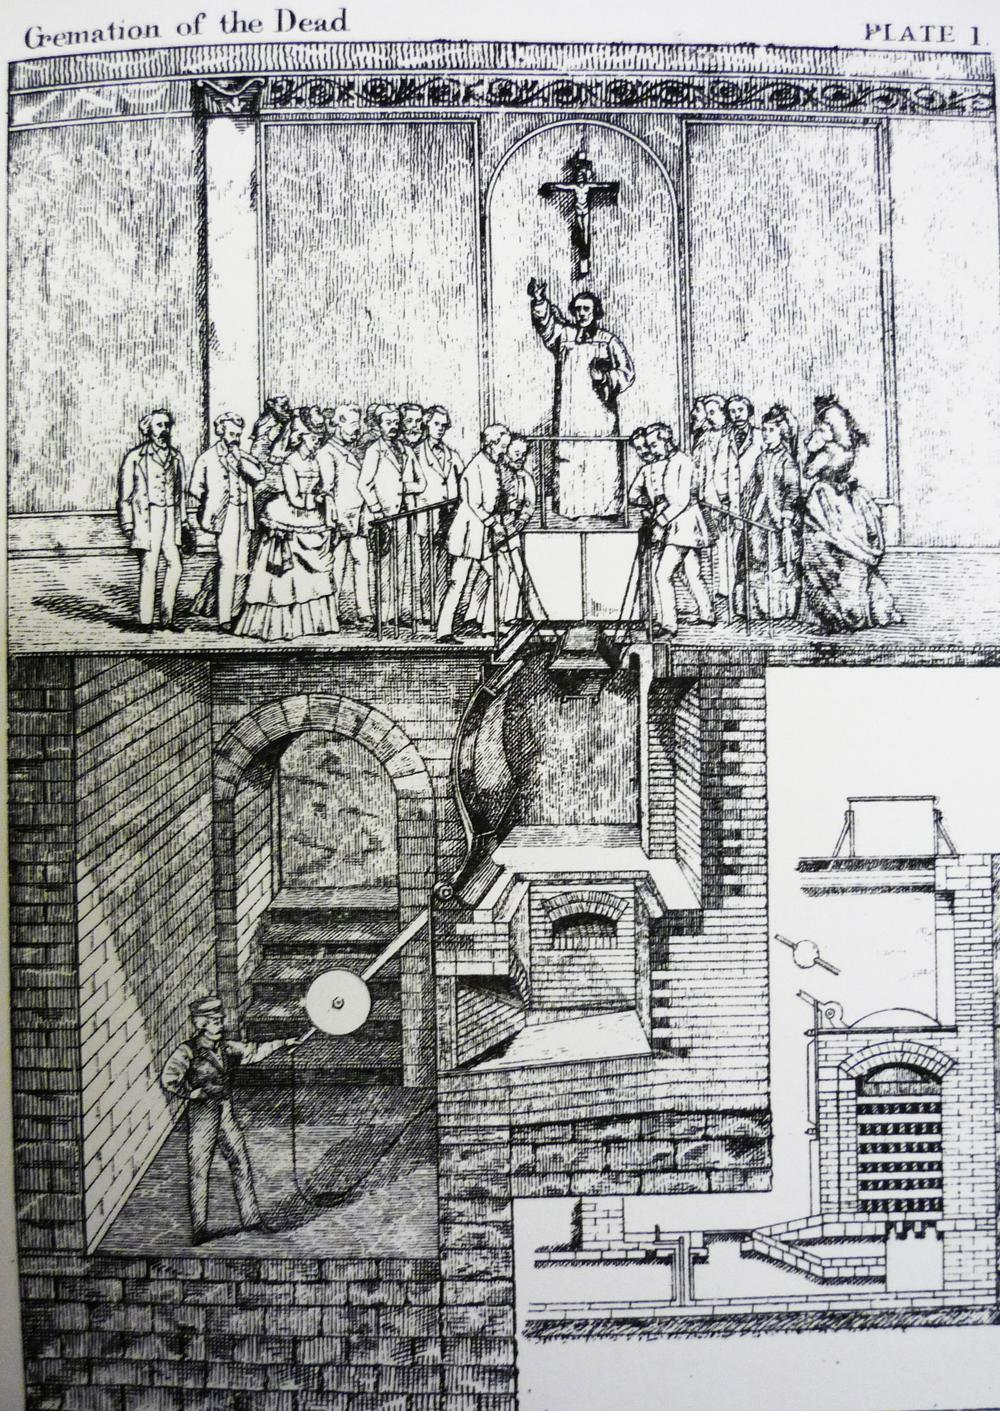 Cremation of the Dead, view of a Siemens' Cremation Apparatus